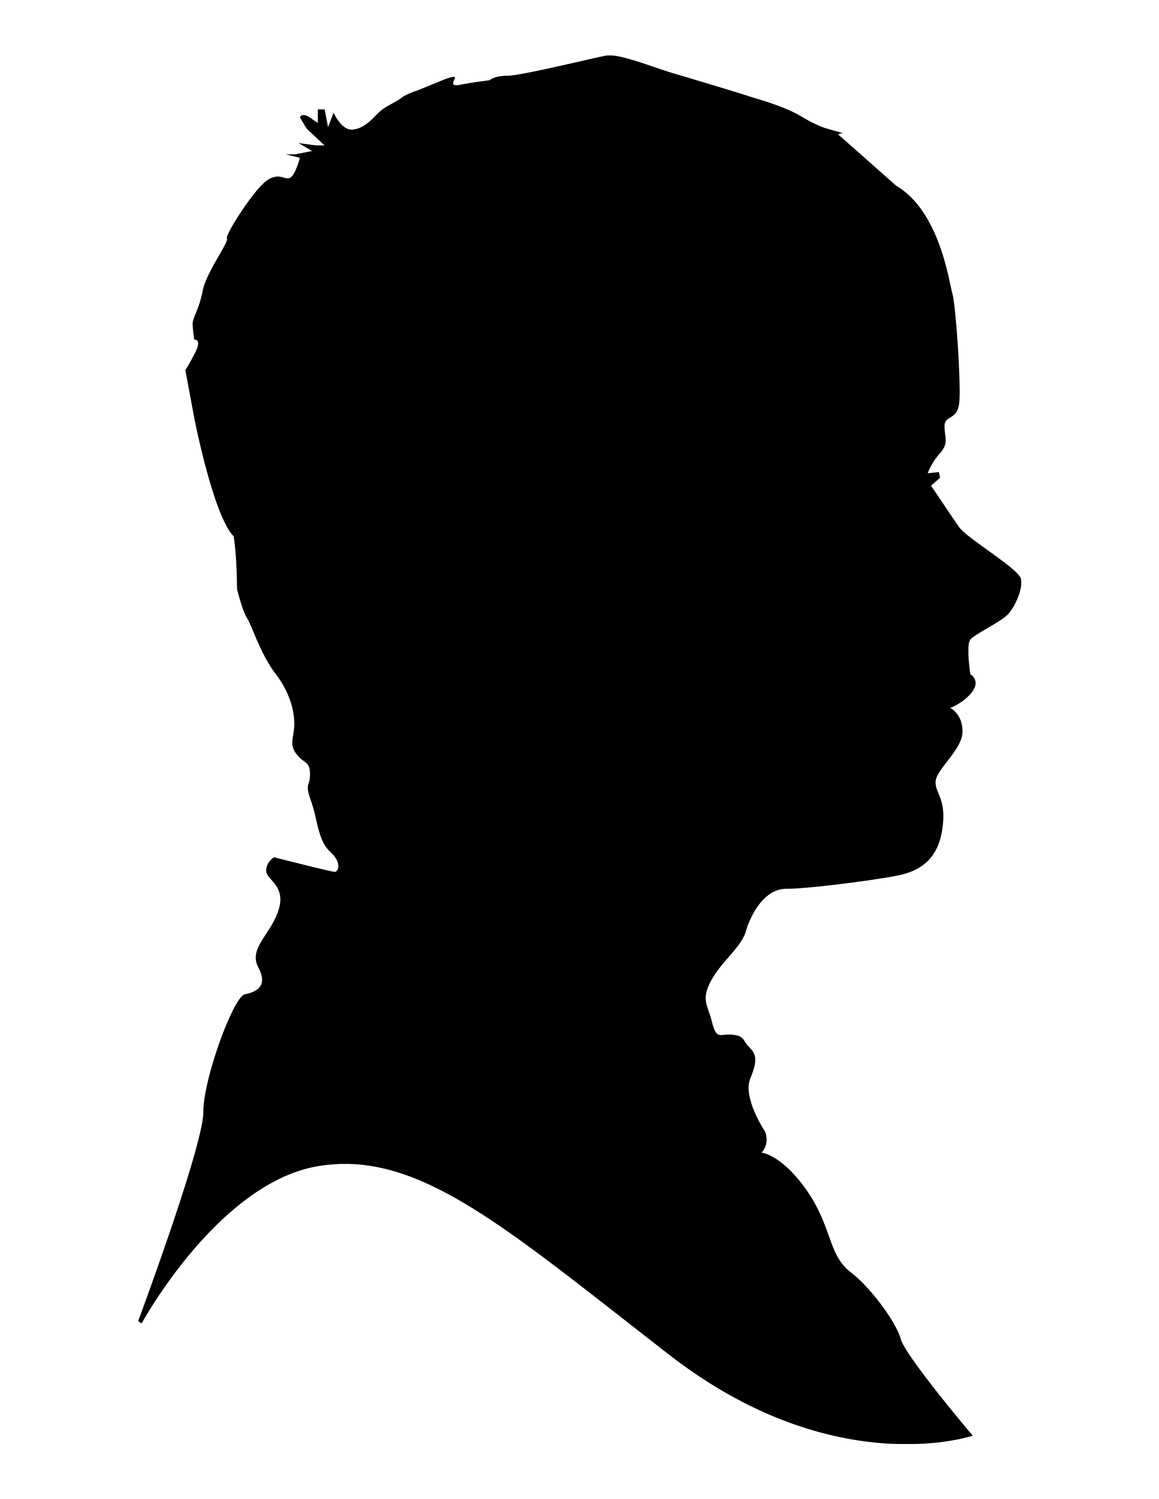 9 11 clipart profile facebook. Silhouette female at getdrawings